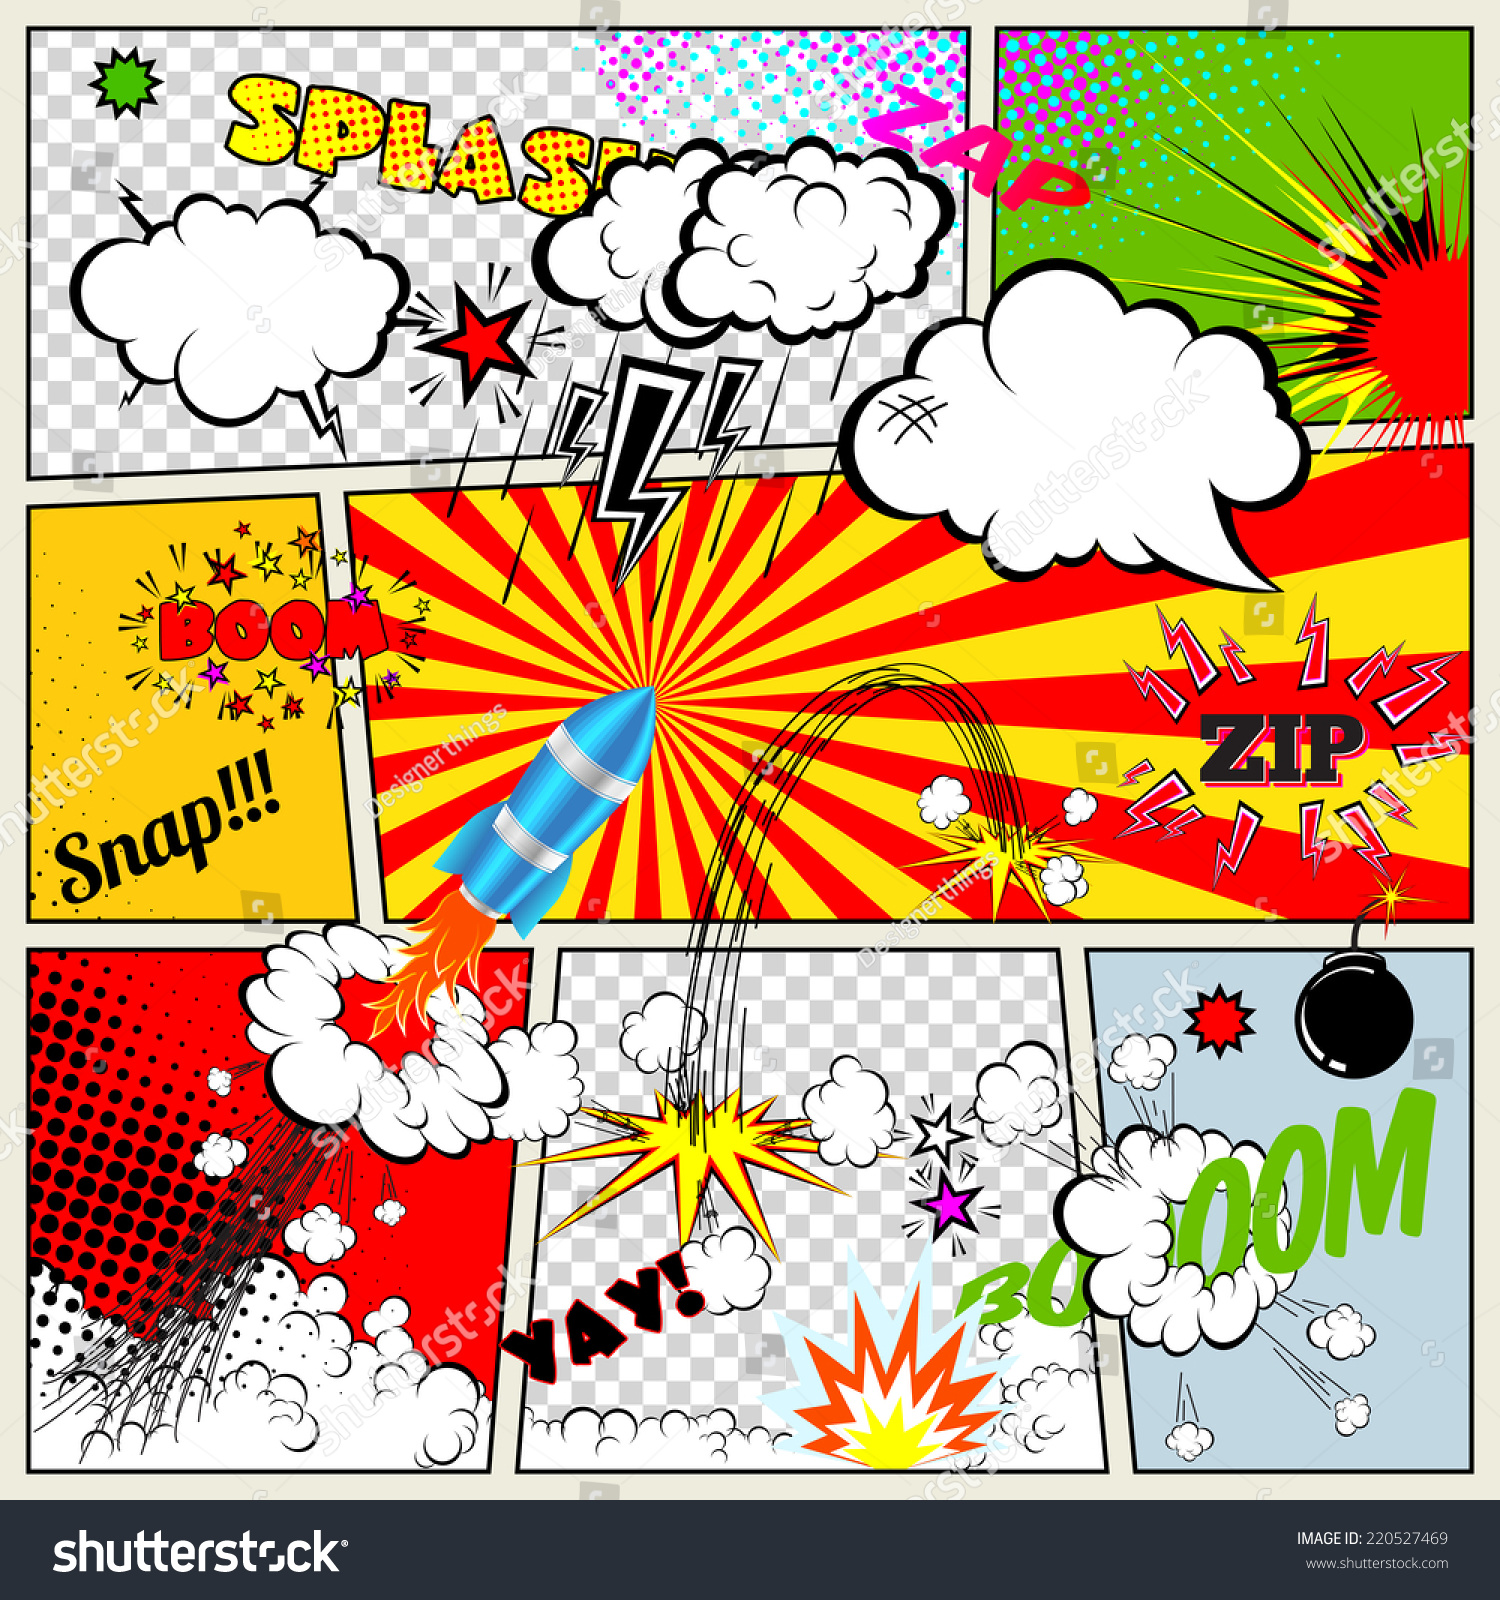 Set of Retro Comic Book Vector Design elements, Speech and Thought ...: www.shutterstock.com/pic-220527469/stock-vector-set-of-retro-comic...